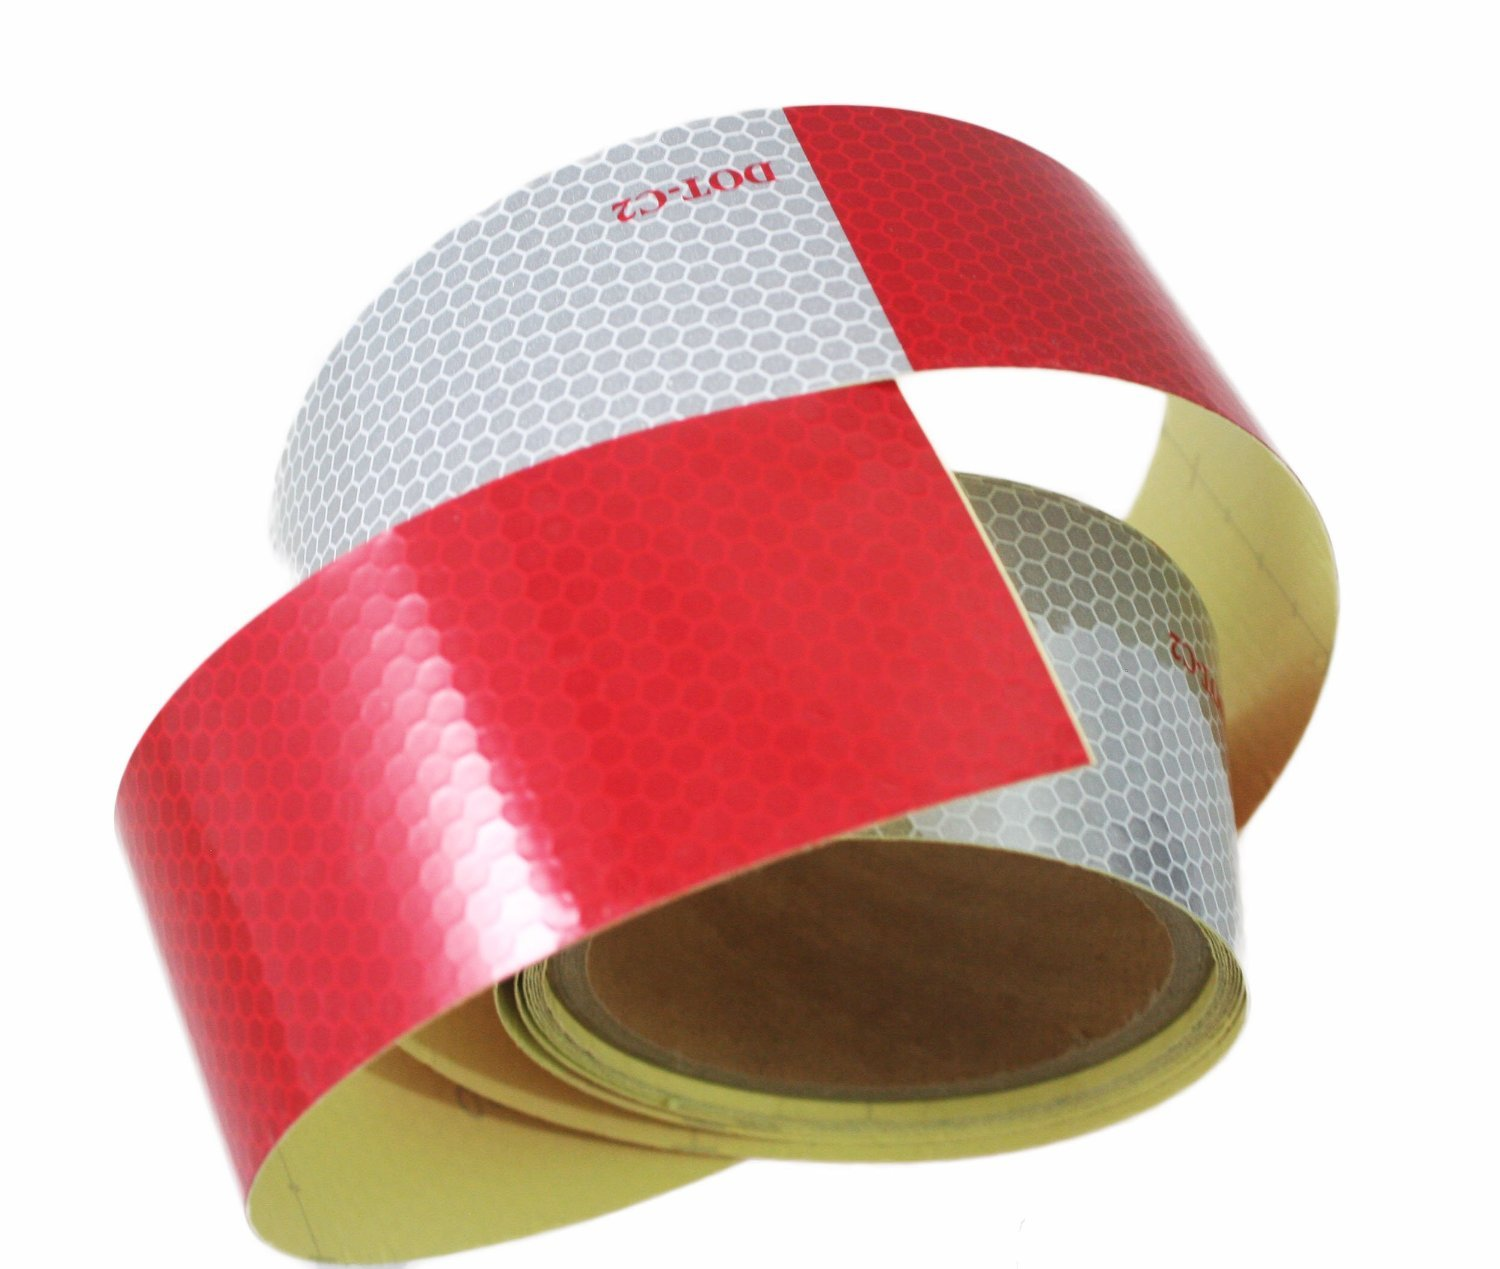 Vehicles Trailers ABN Trailer Conspicuity Tape DOT-C2 Approved 2 Inch X 10 Foot Reflective Red//White Tape Boats Signs